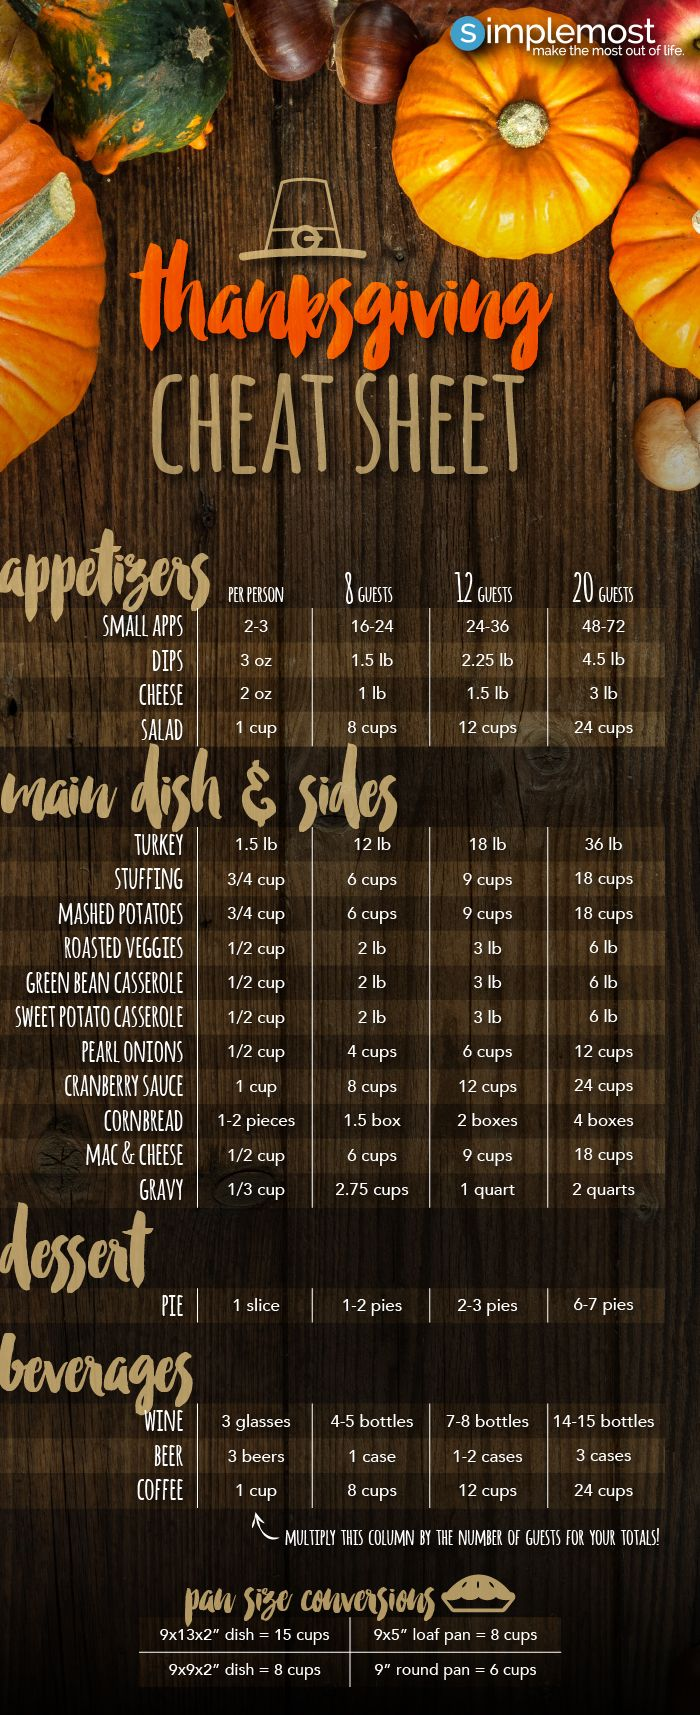 Not sure how much food to make your family this year for Thanksgiving? This serving size cheat sheet will help with your recipe planning: http://www.simplemost.com/the-best-thanksgiving-serving-size-cheat-sheet/?utm_source=pinterest&utm_medium=referral&utm_campaign=organic